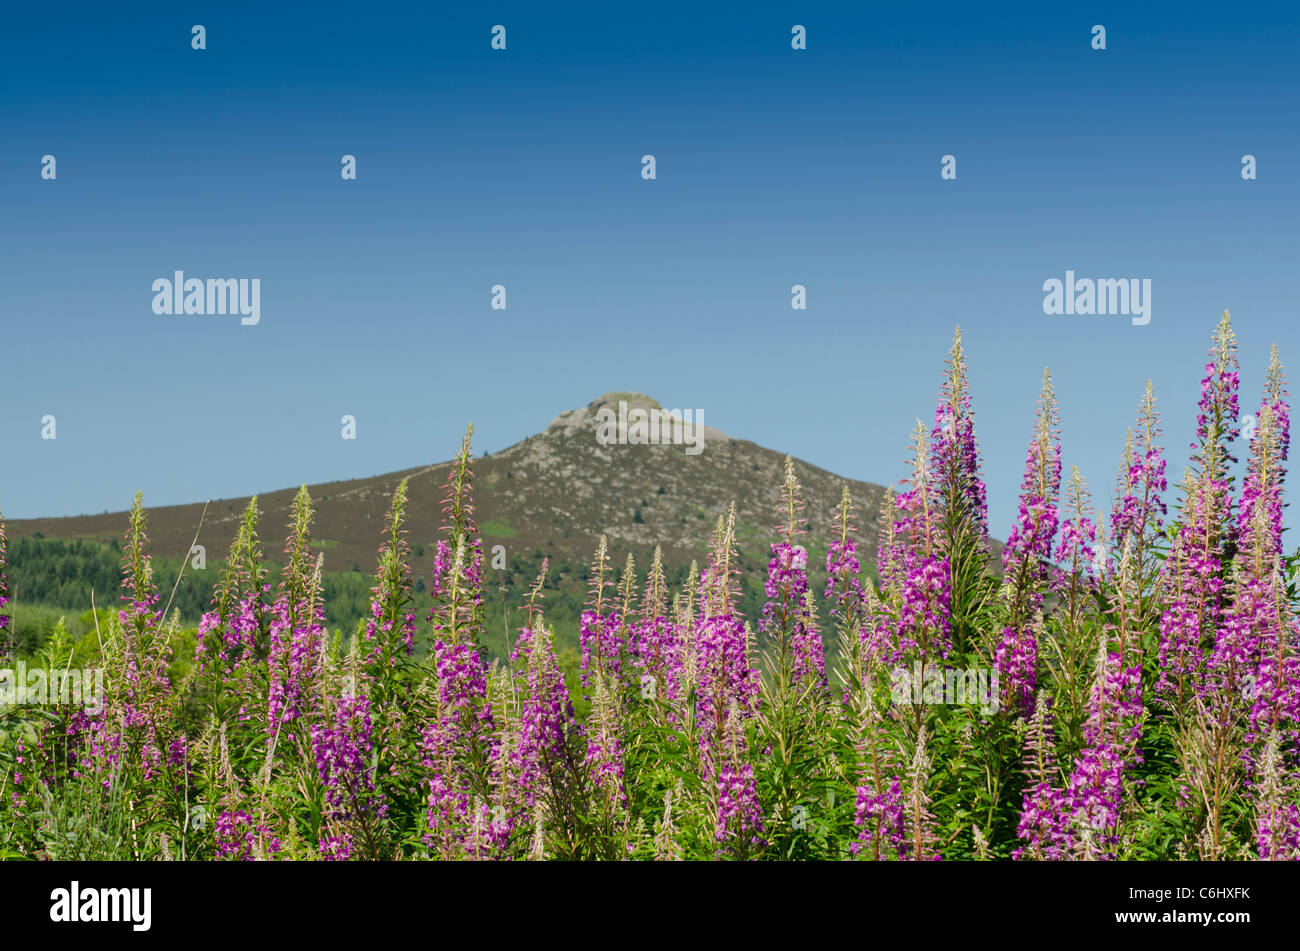 Bennachie or The Mither Tap and Rosebay Willowherb - Stock Image